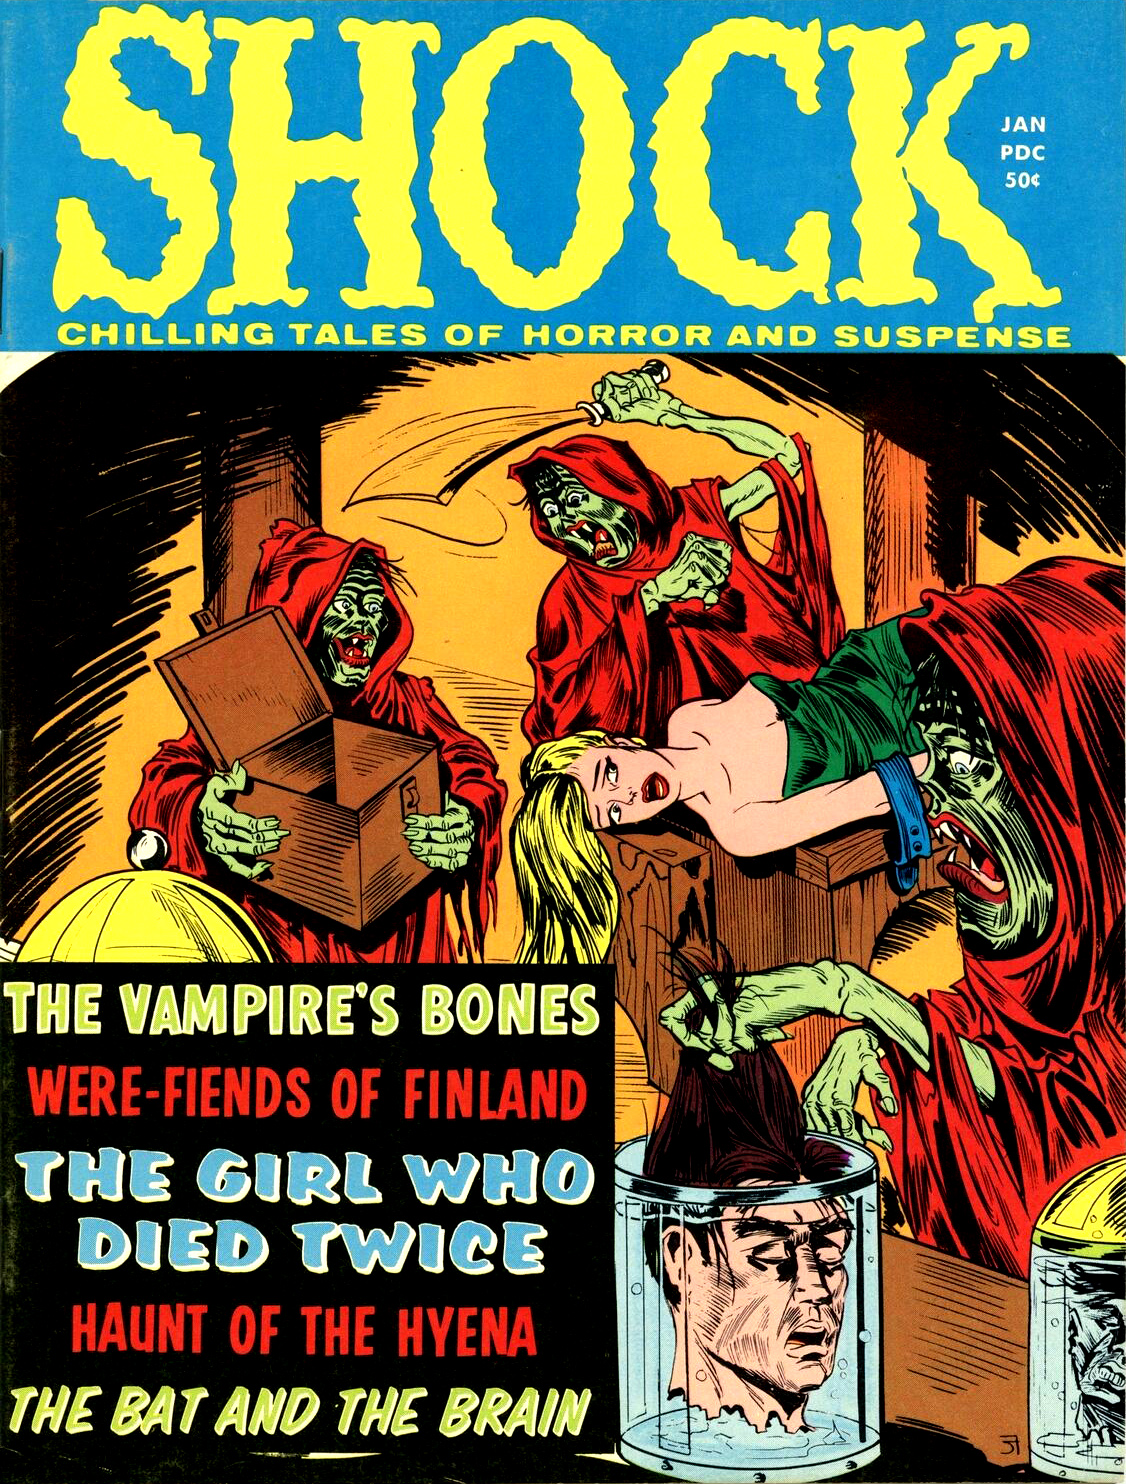 Shock - Volume 2, Issue 06, January 1971